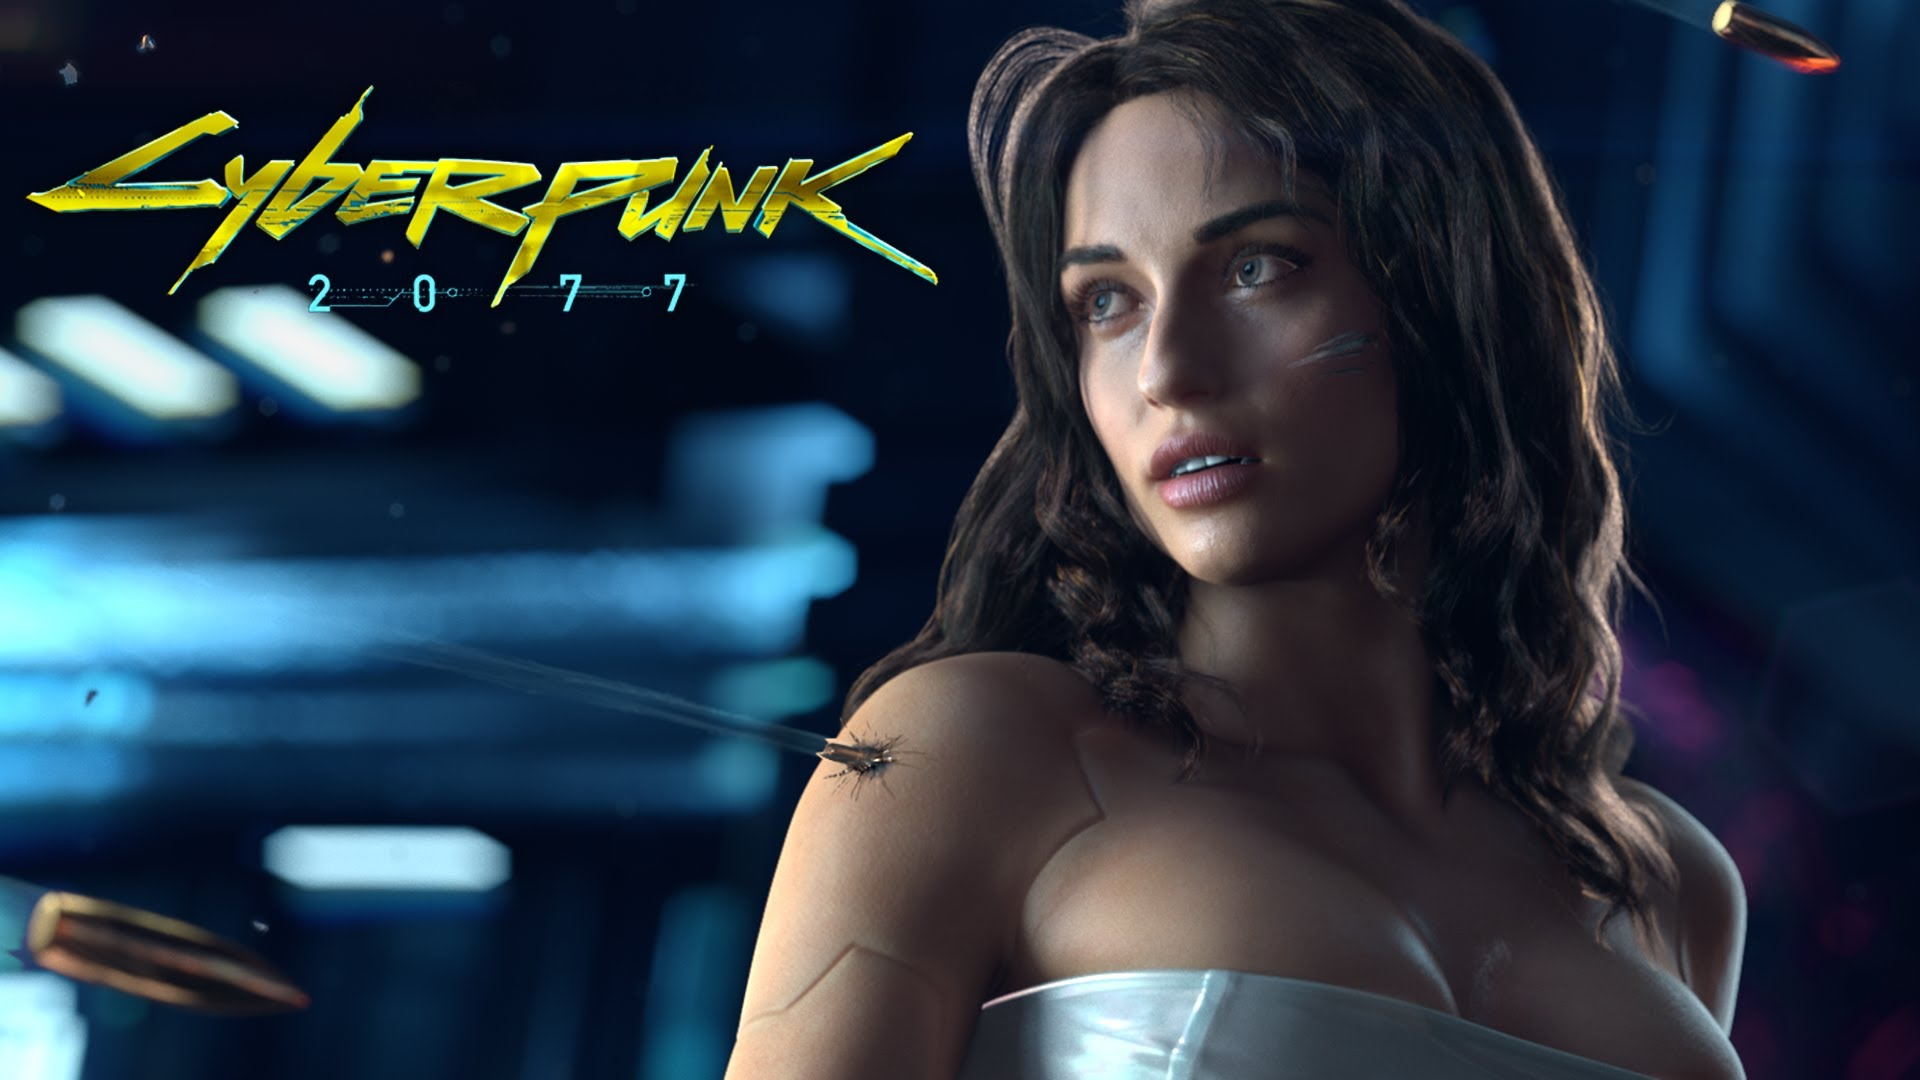 """Cyberpunk 2077"" Aiming to Launch in Late 2016 - Keyword Being"